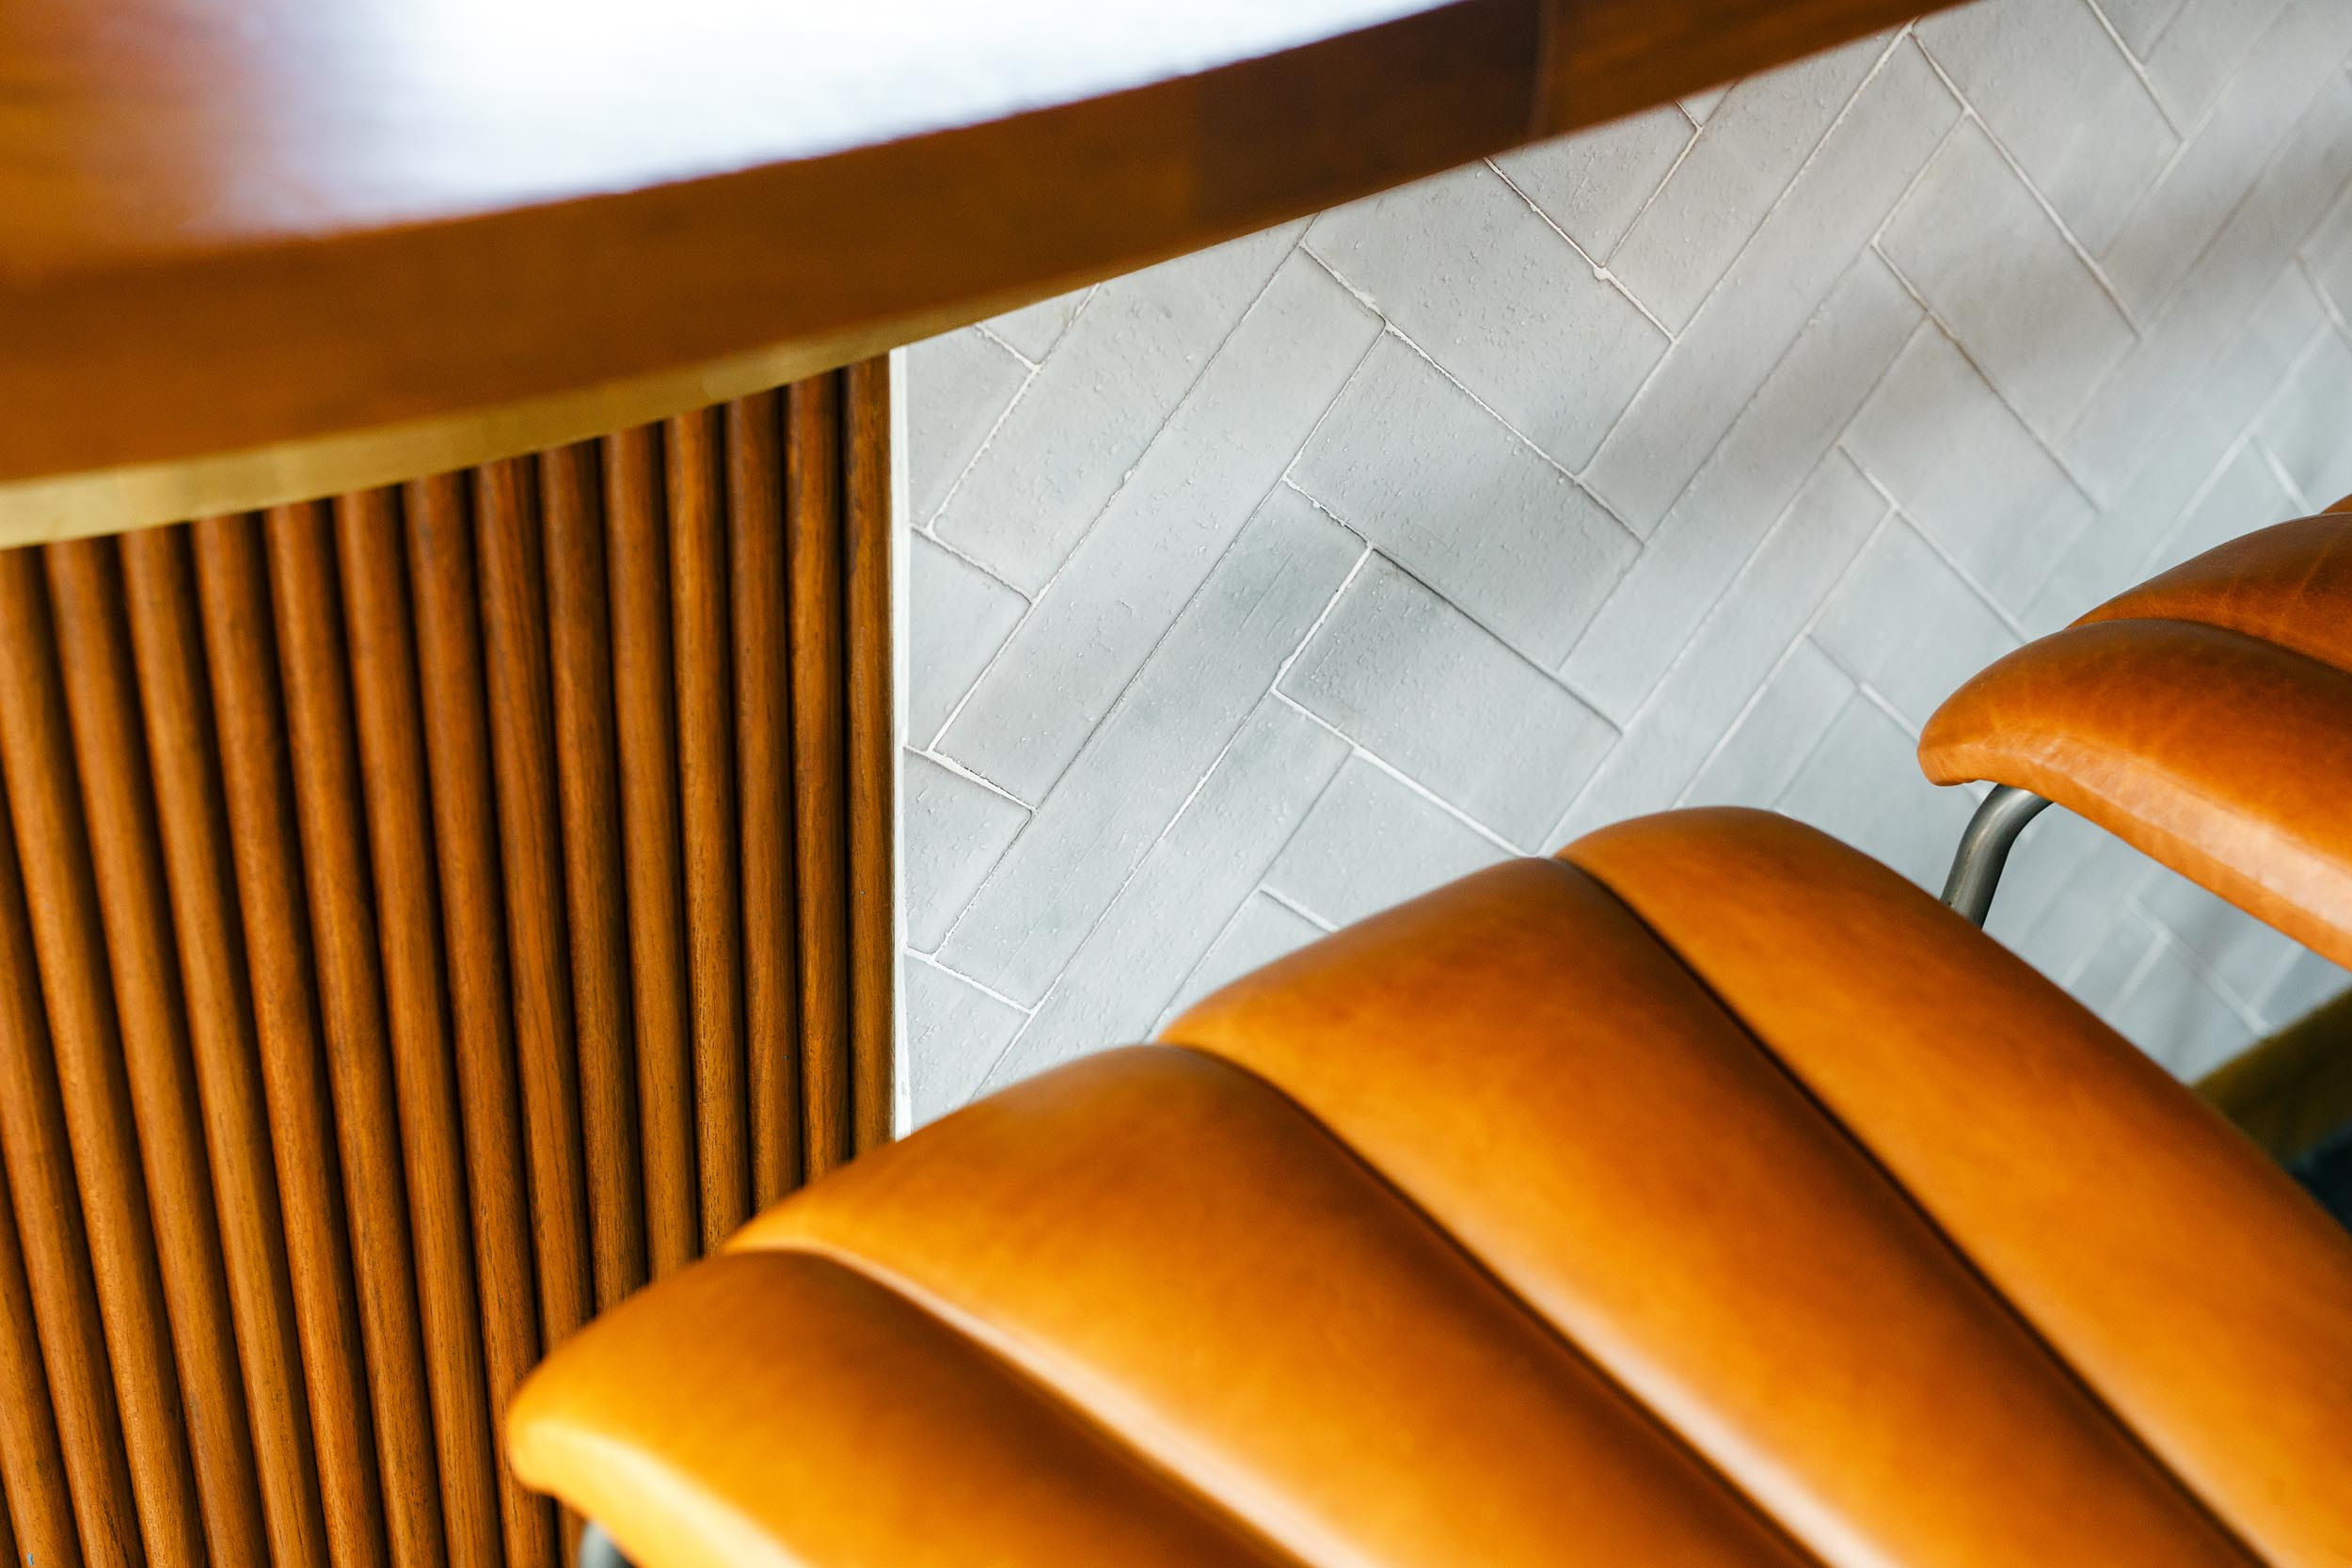 Contemporary Restaurant Photography Interior Design Styles by Worker Bee Supply